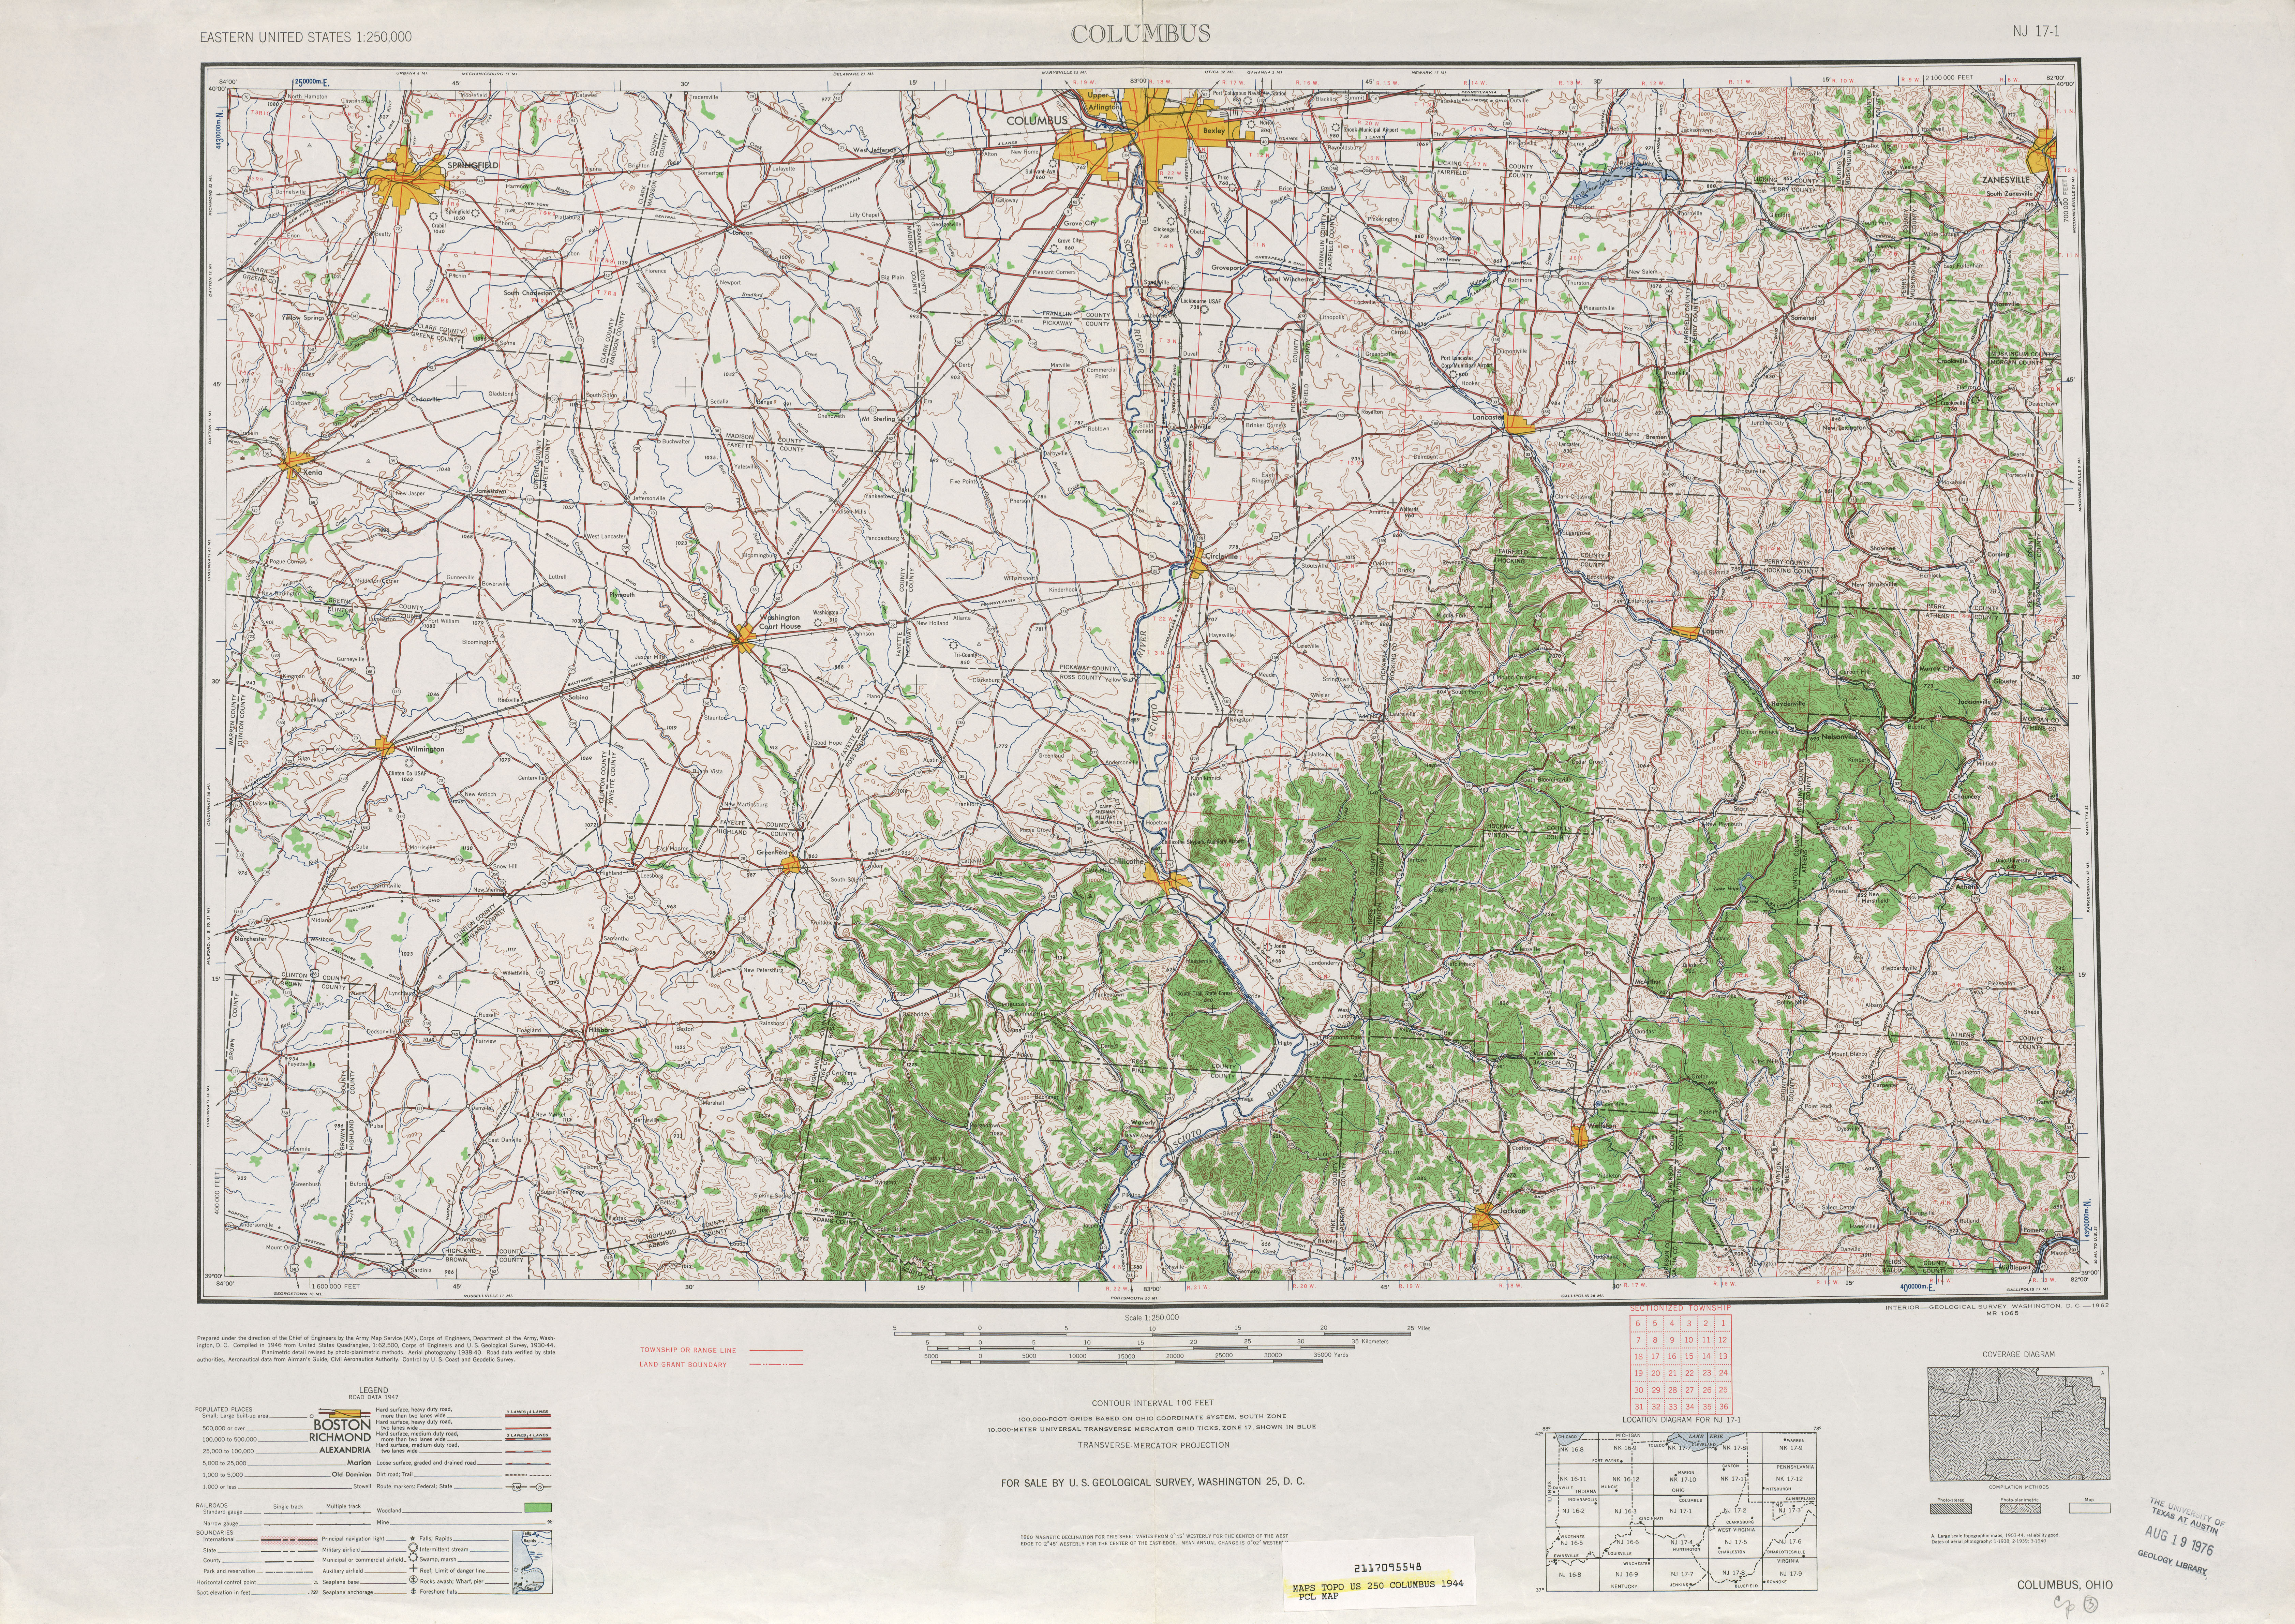 Columbus Topographic Map Sheet, United States 1944